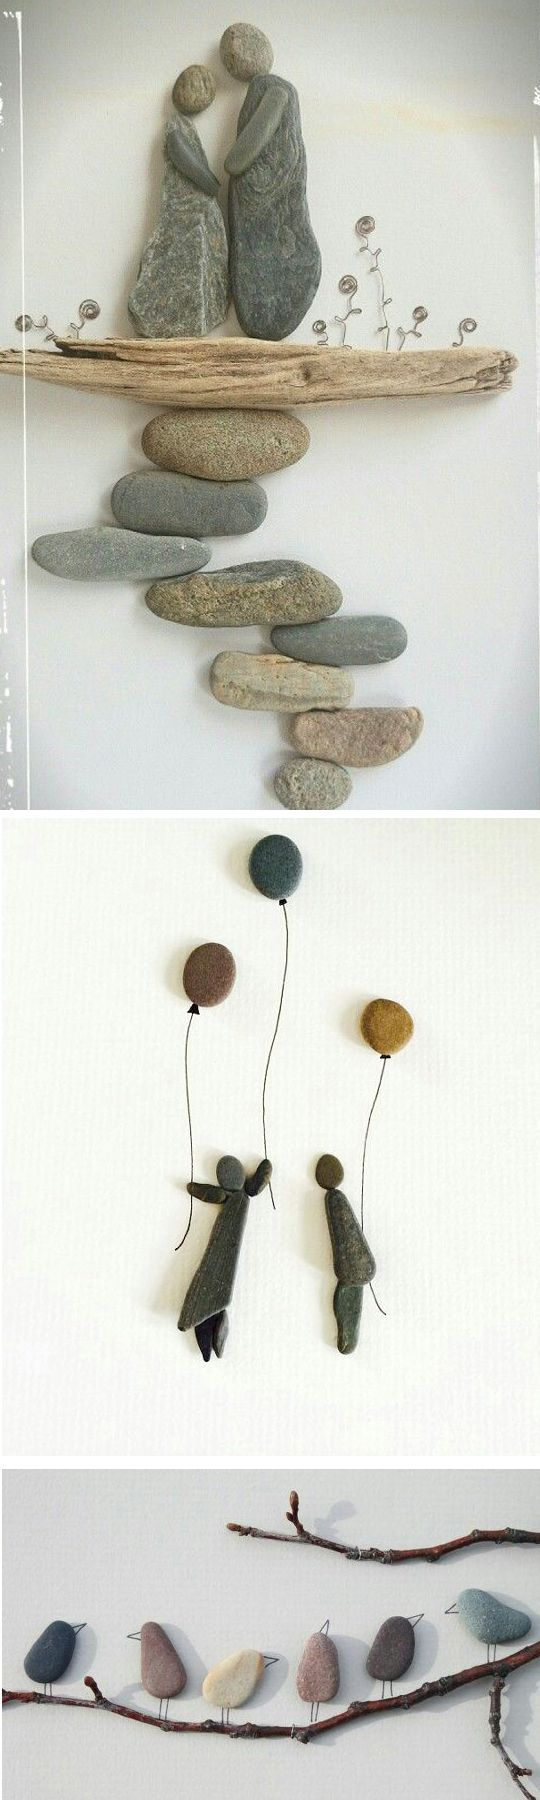 Beautiful inspiration for art with rocks and twigs!